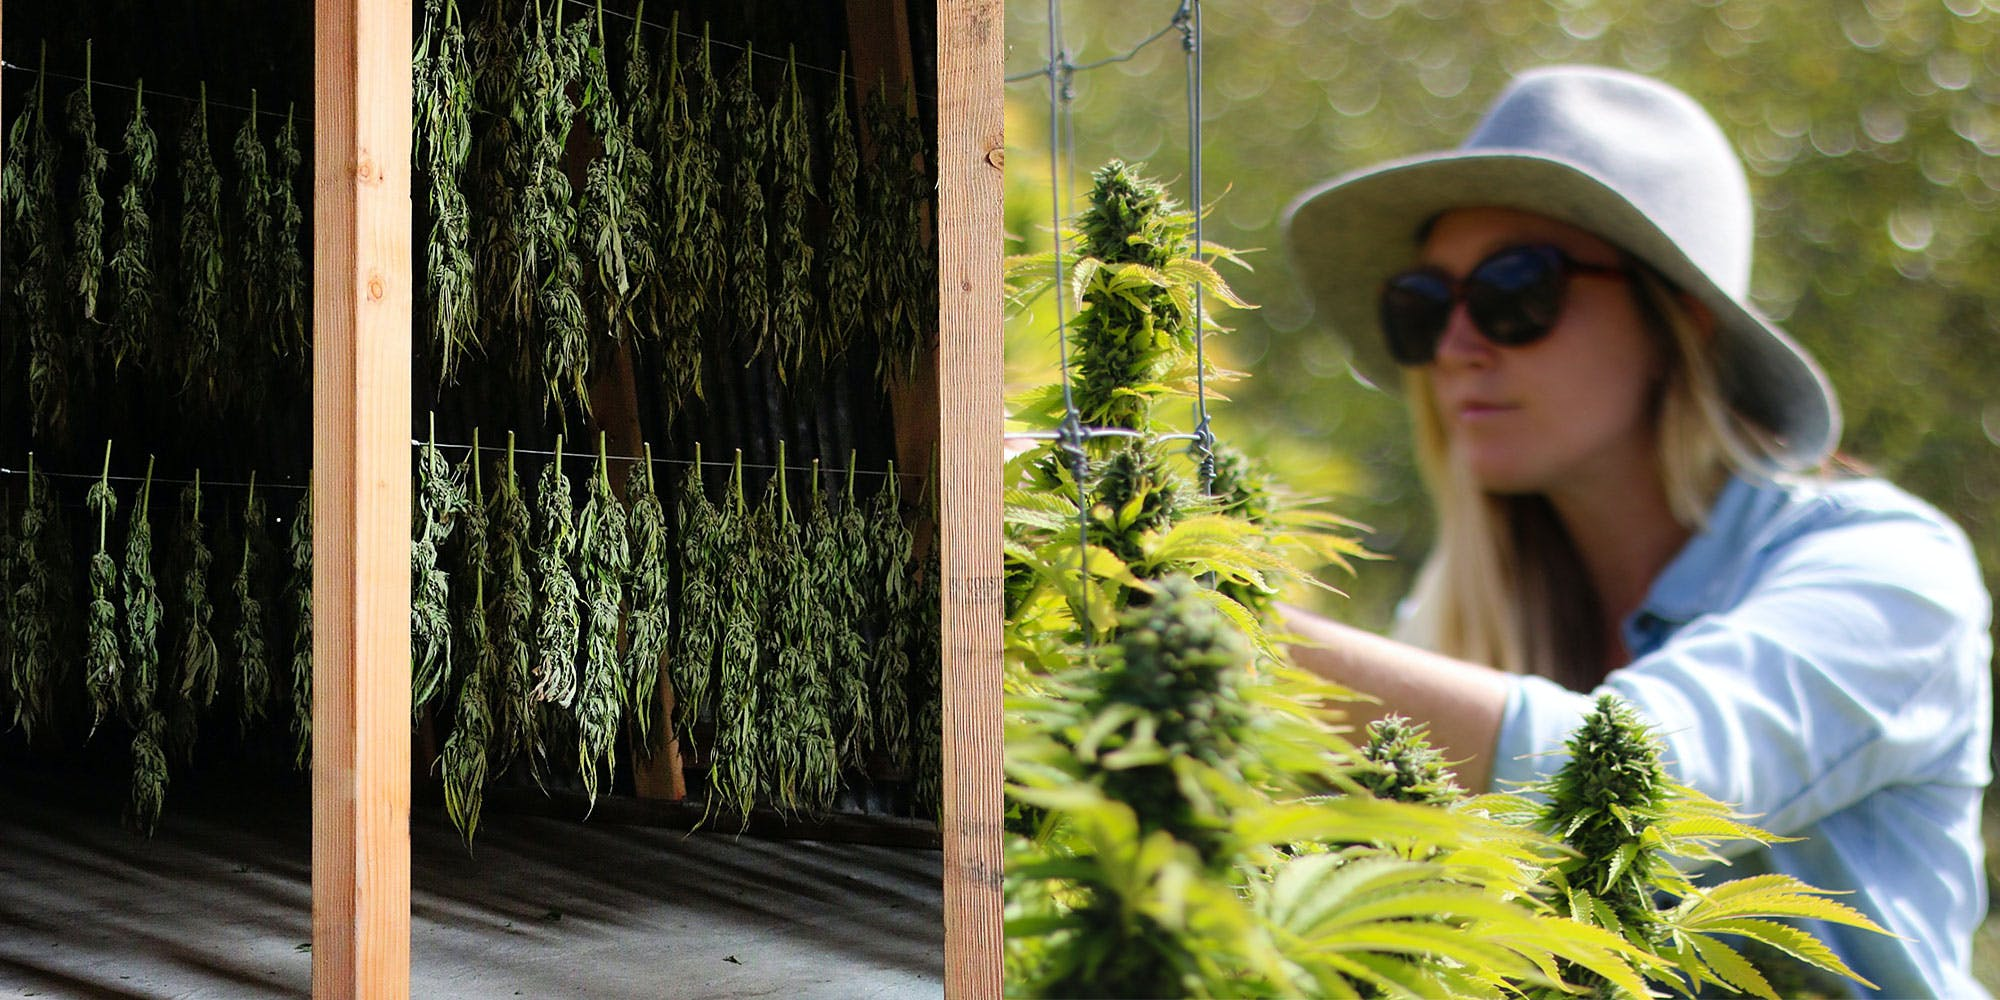 Woman tending to Cannabis plants in Humboldt, California